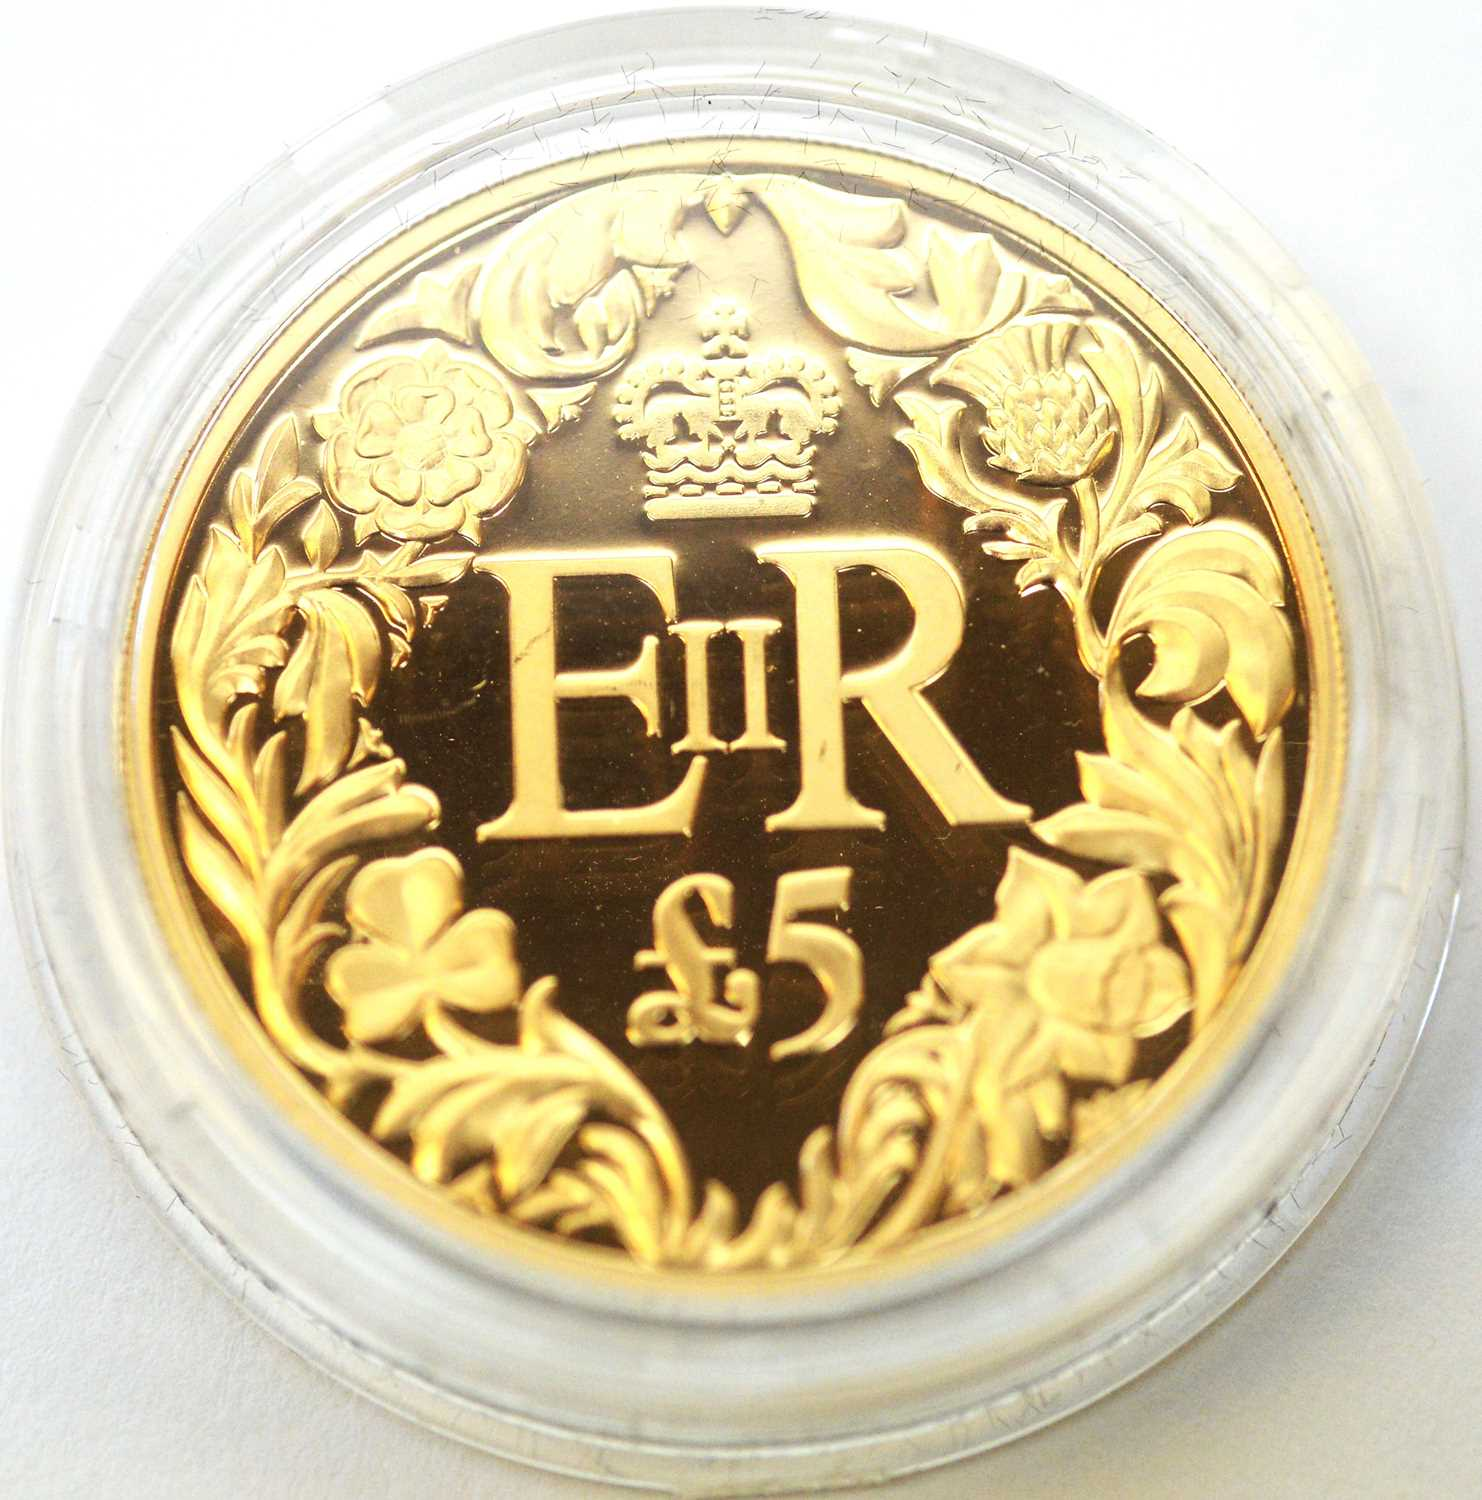 A Diamond Jubilee 22ct gold piedfort £5 Guernsey crown - Image 2 of 4